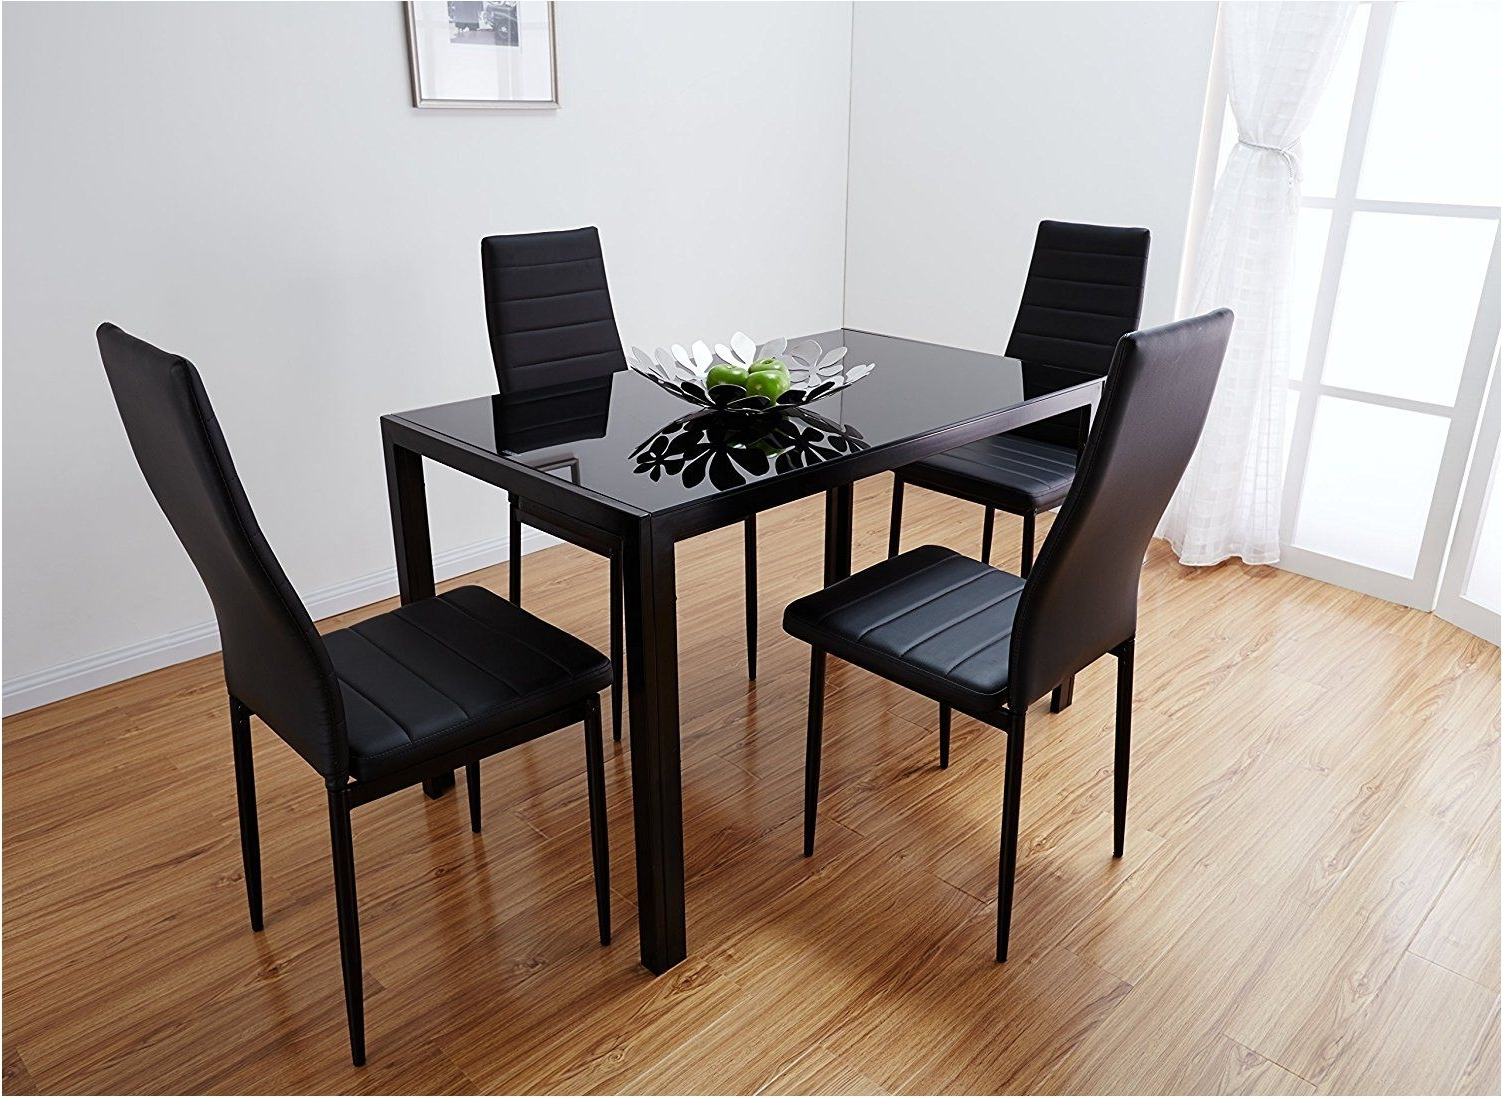 Most Up To Date Nice Black Glass Dining Table Set With 4 Faux Leather Chairs Brand Inside Black Glass Dining Tables 6 Chairs (Gallery 14 of 25)